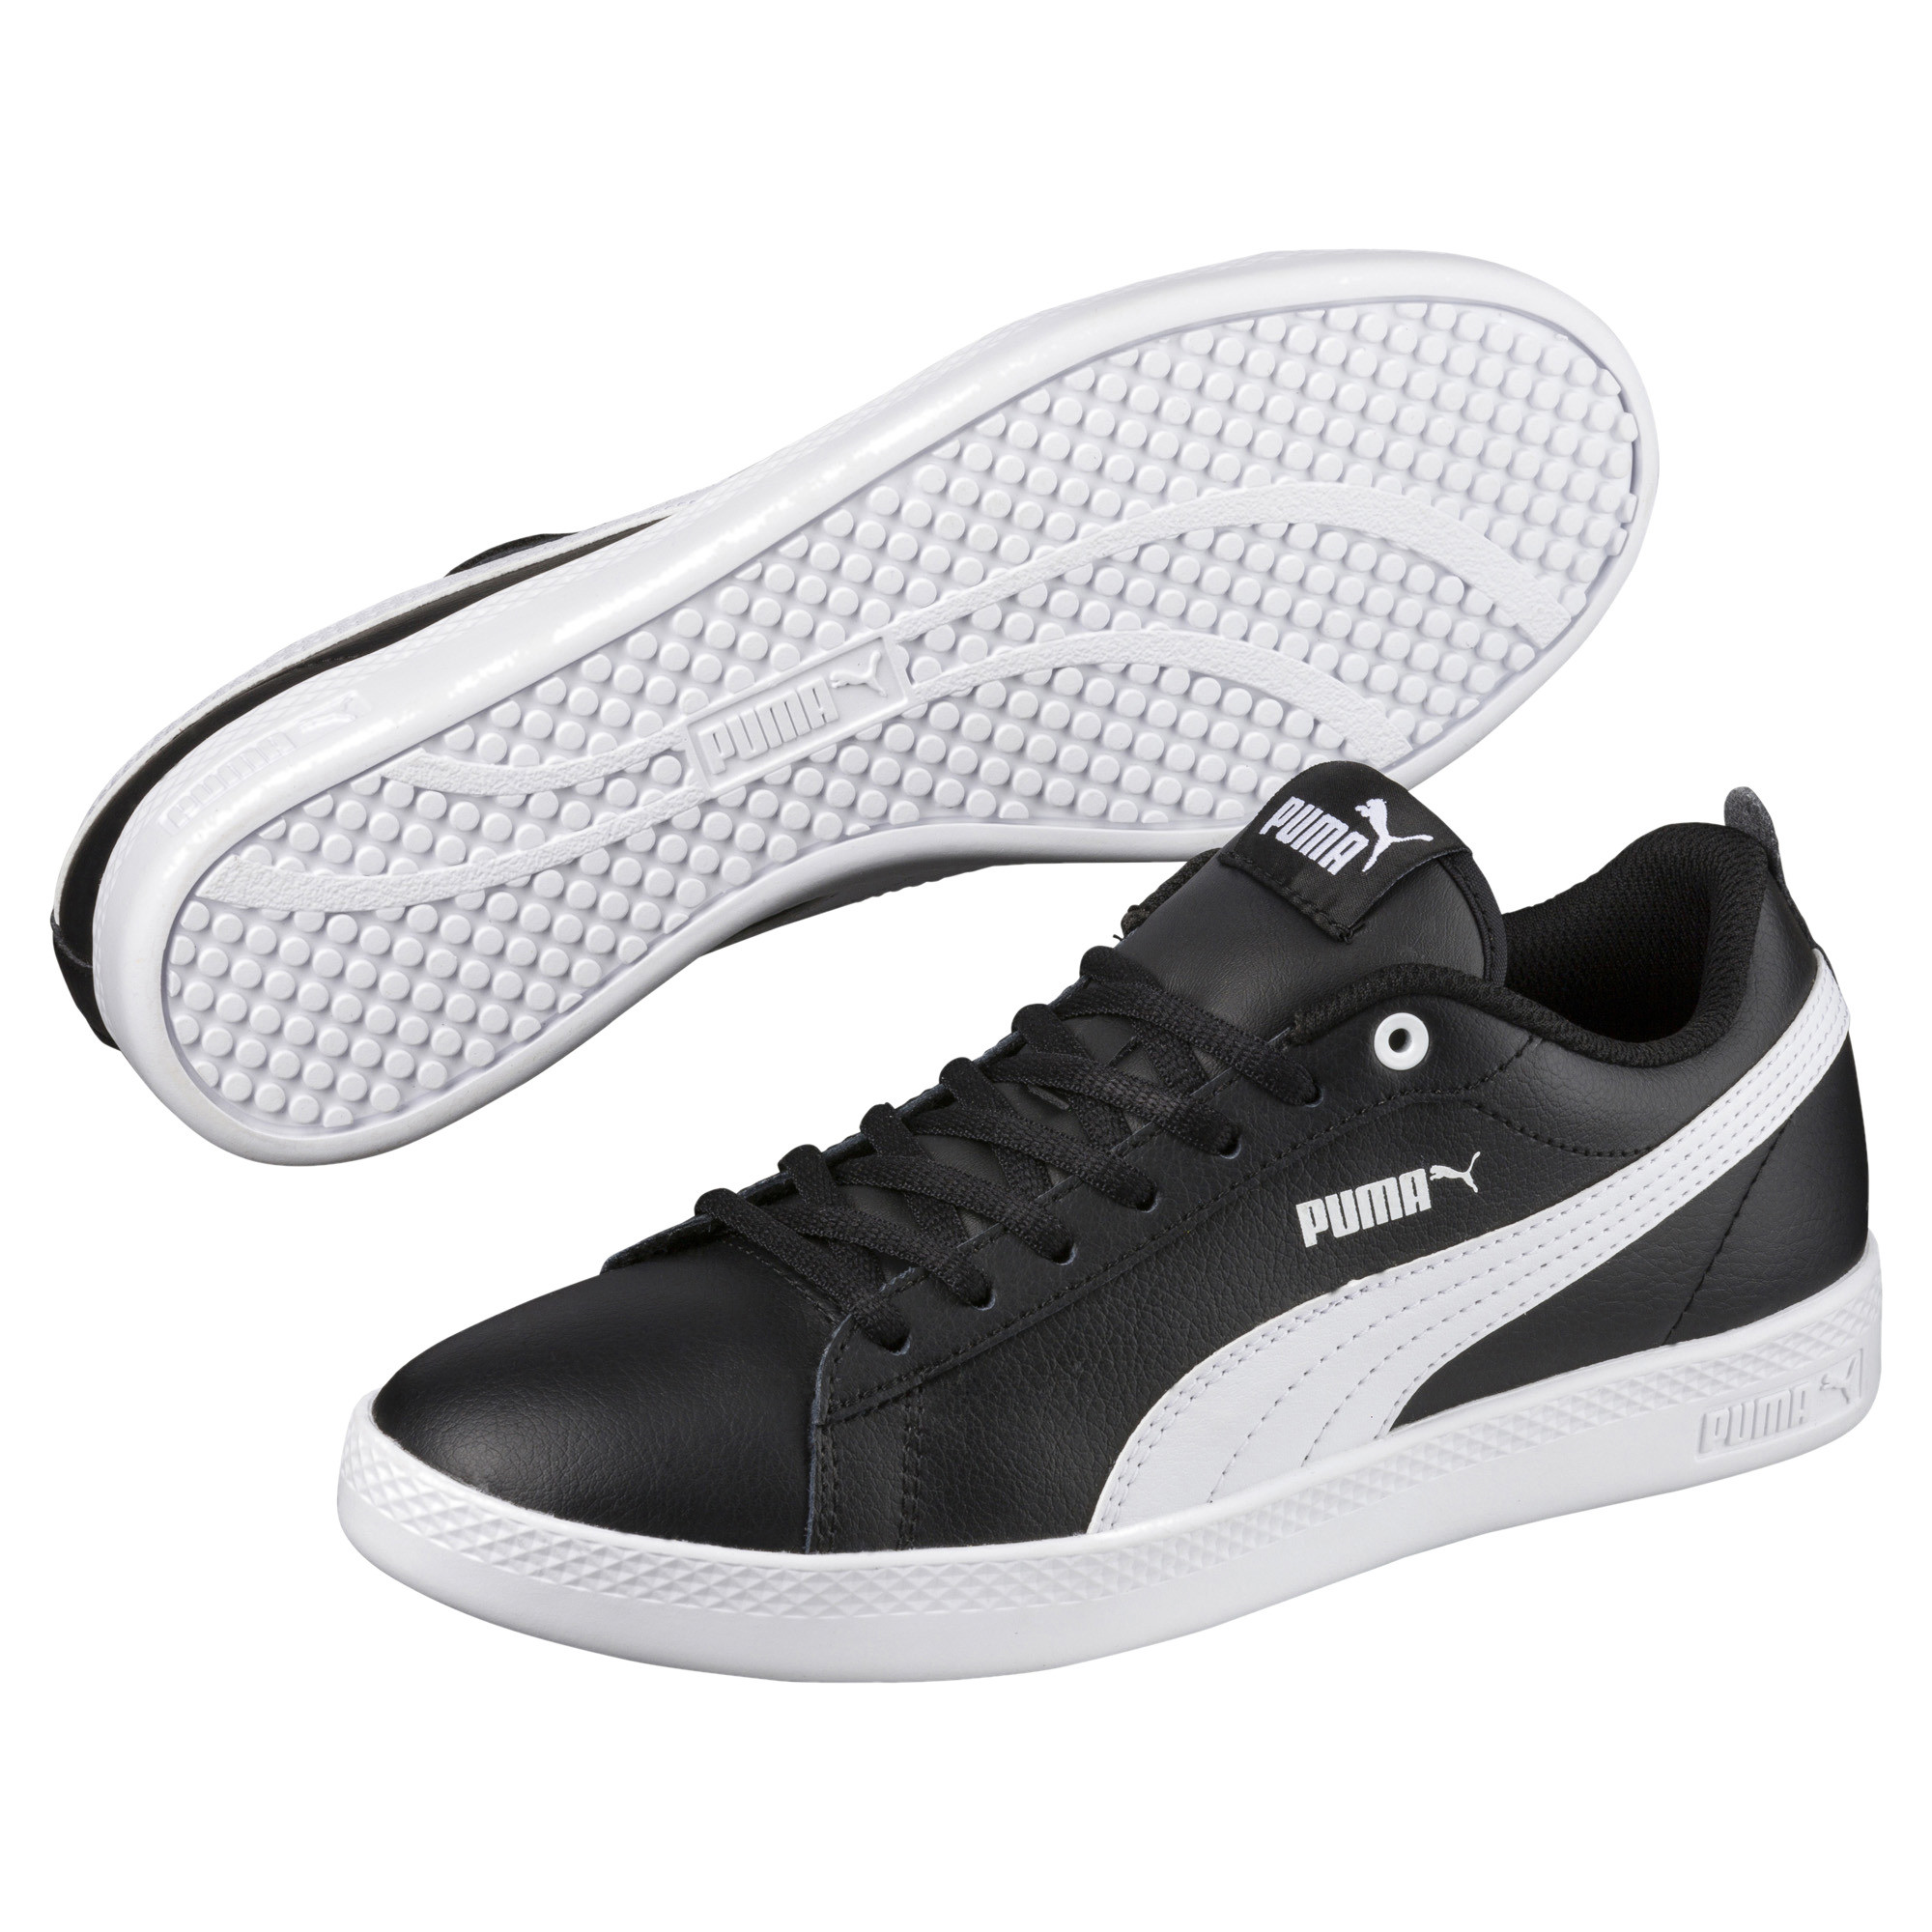 Puma California 2 Nm Leather Sneakers Shoes 7 For Sale Online Ebay